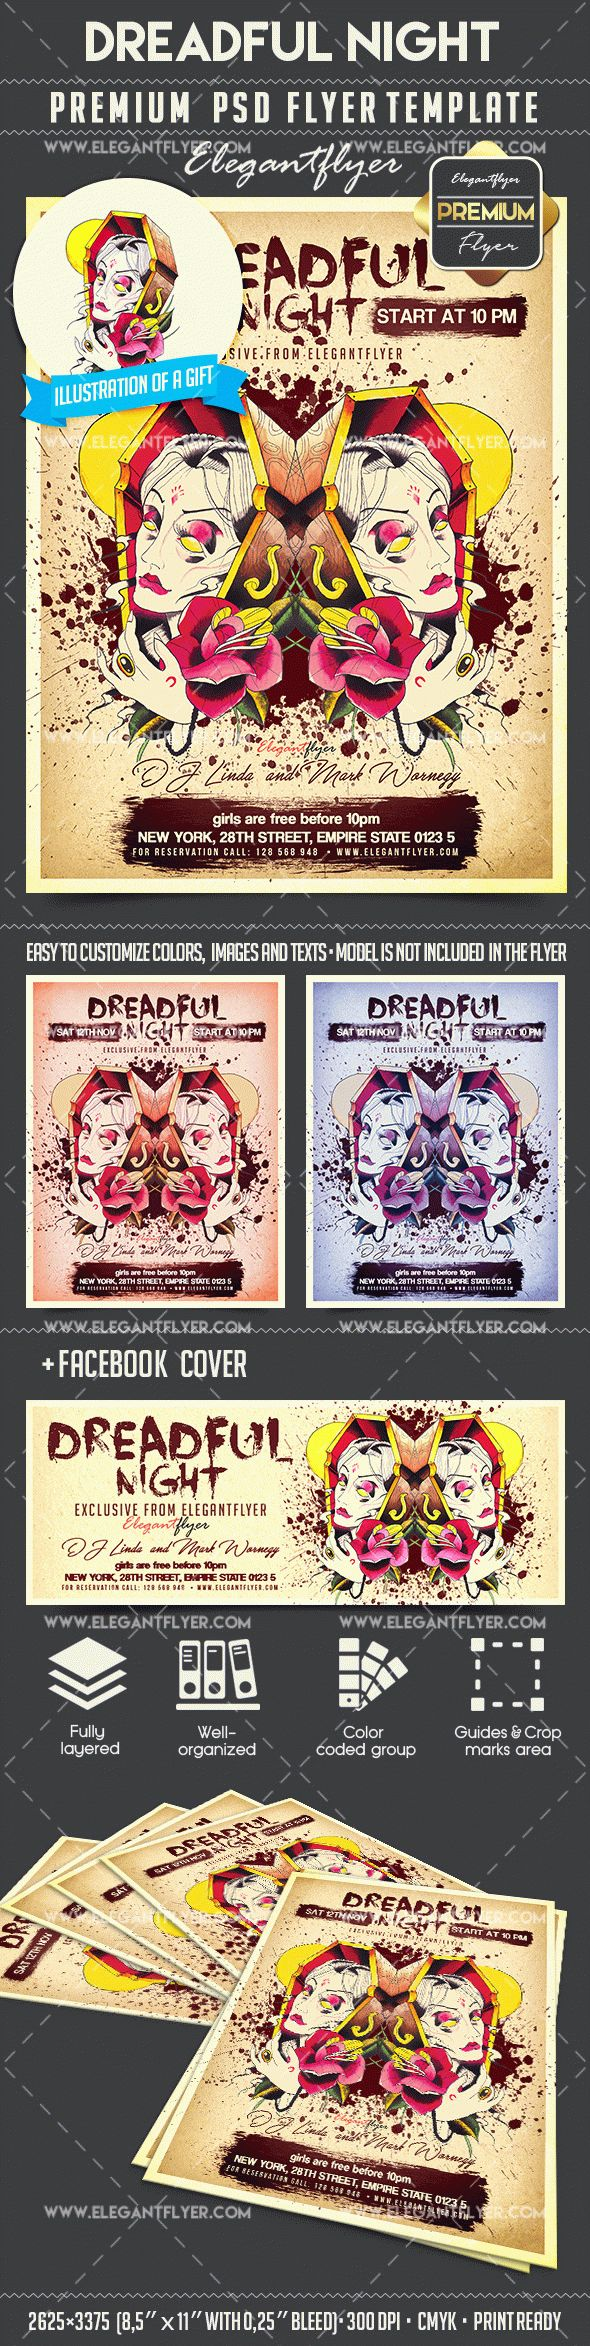 Dreadful Night – Flyer PSD Template + Facebook Cover